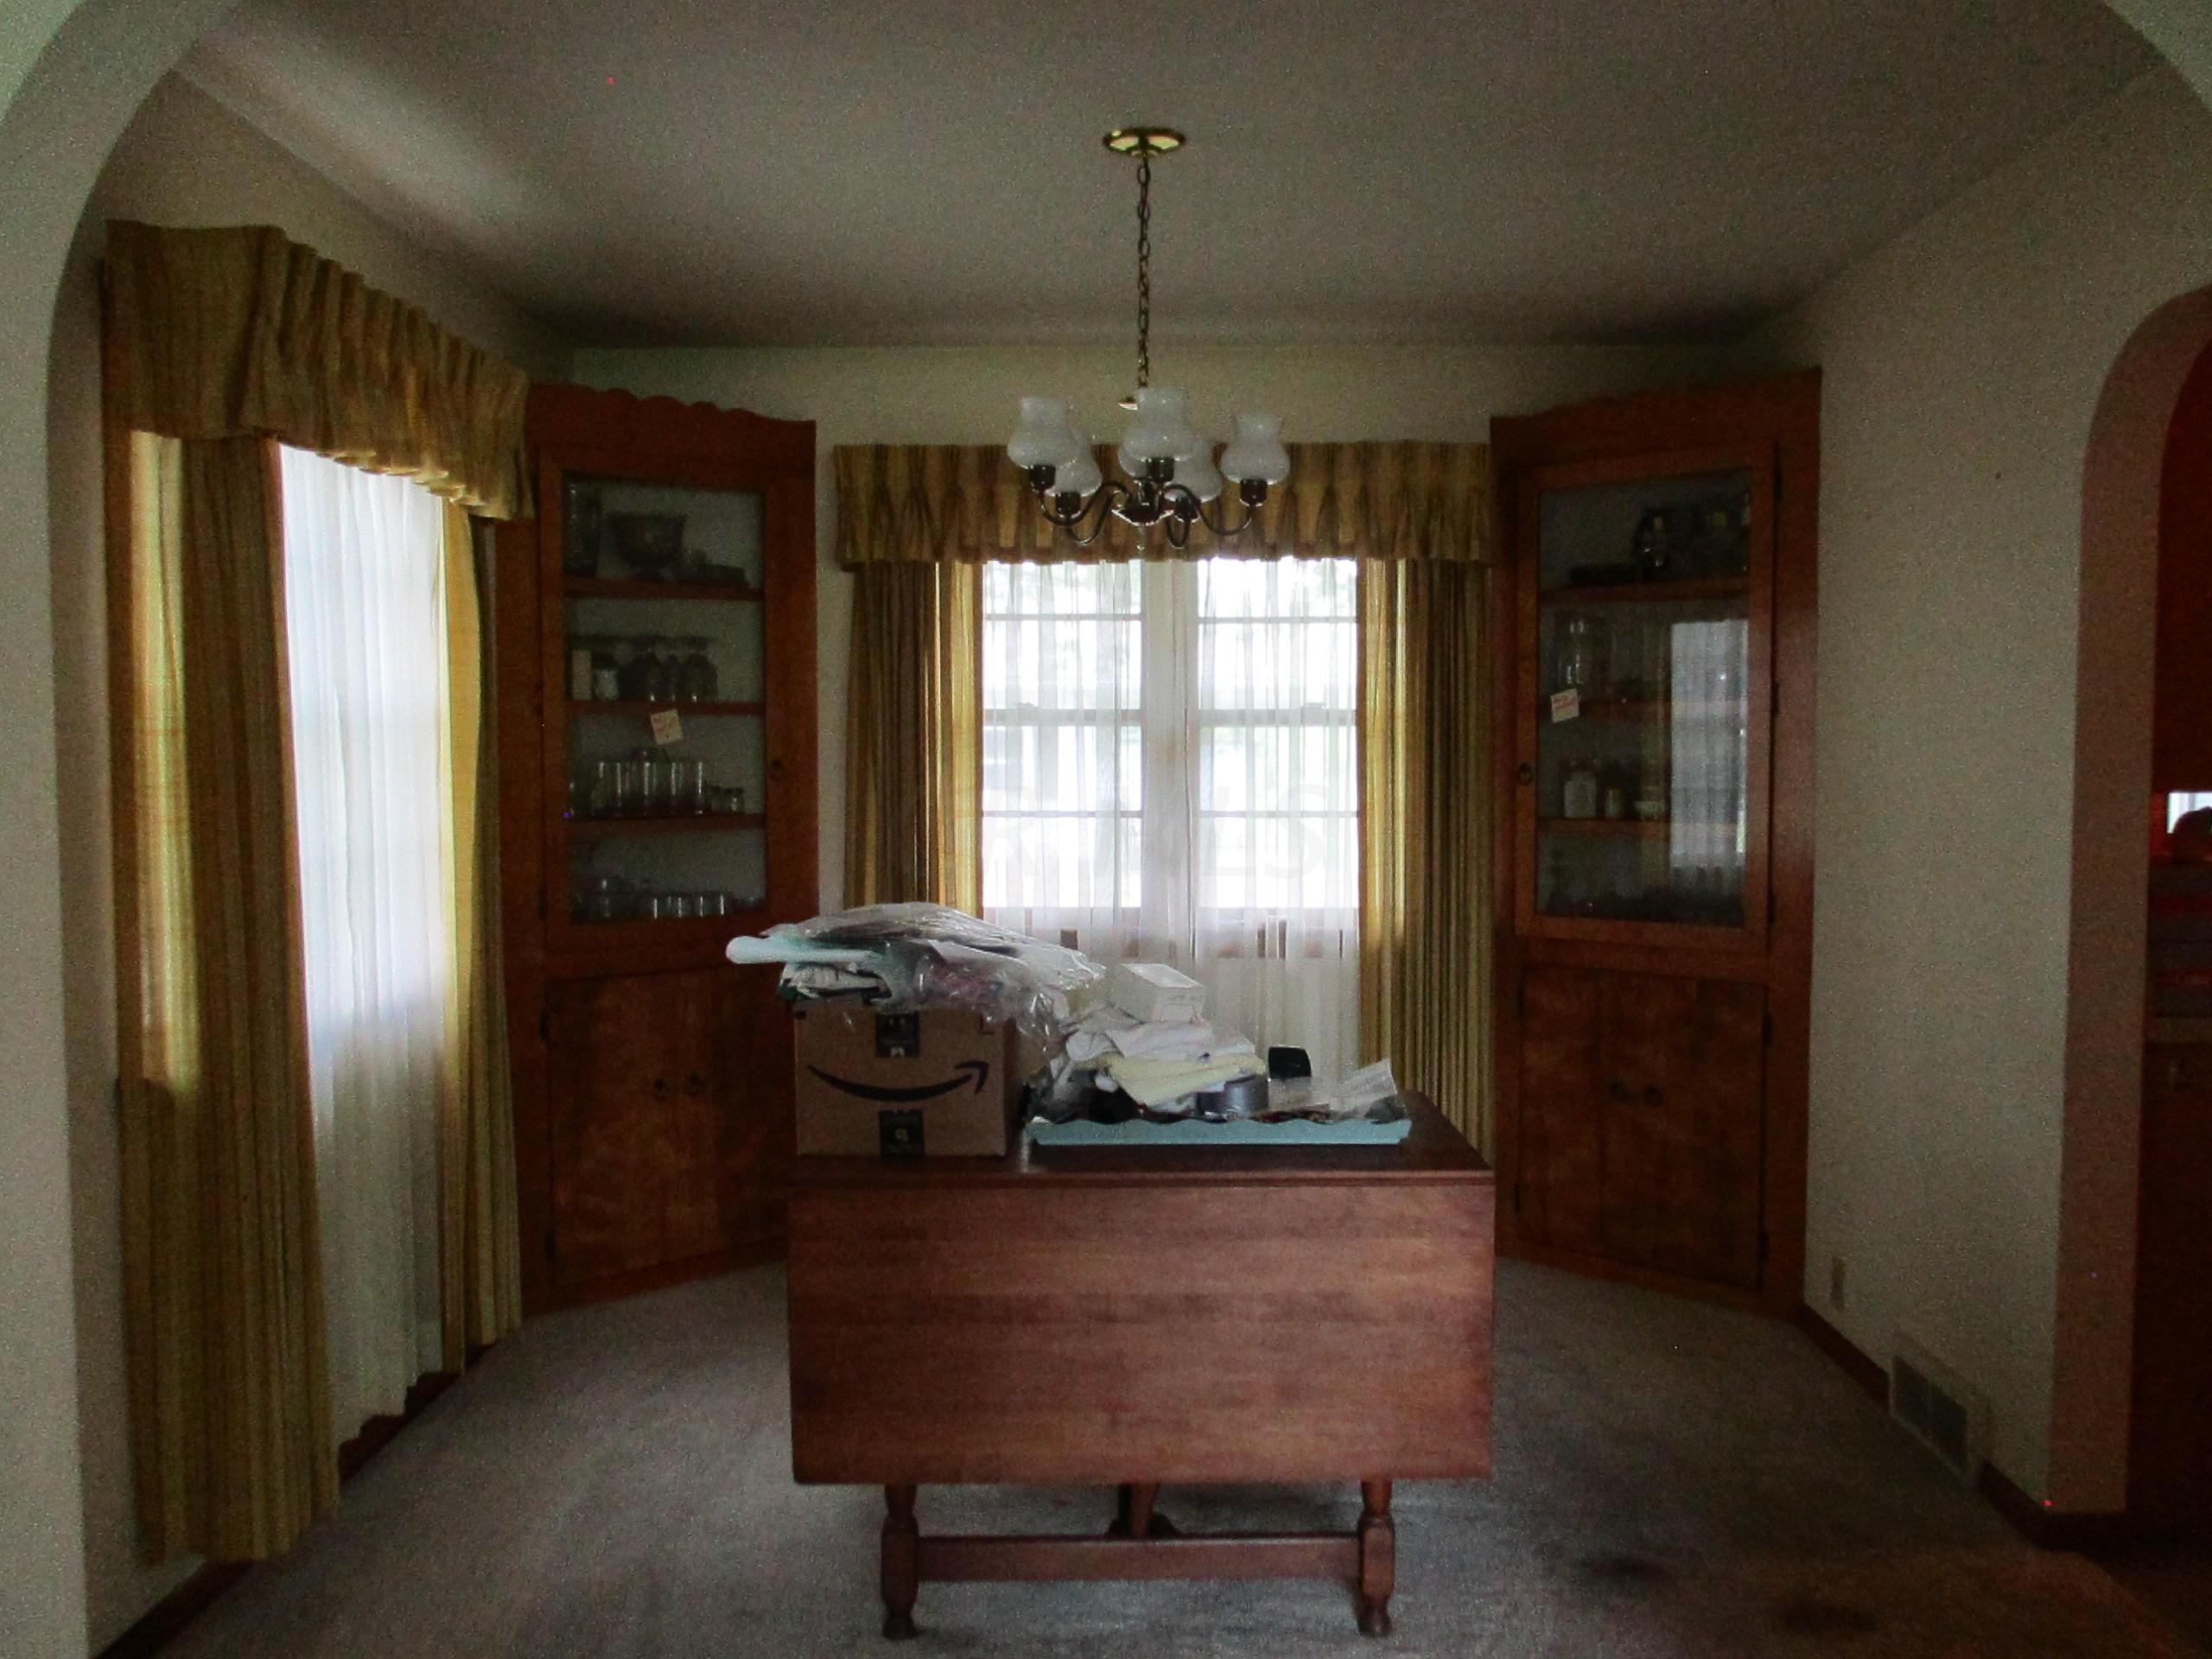 578 W Marion St  - 7665 CR 201 022